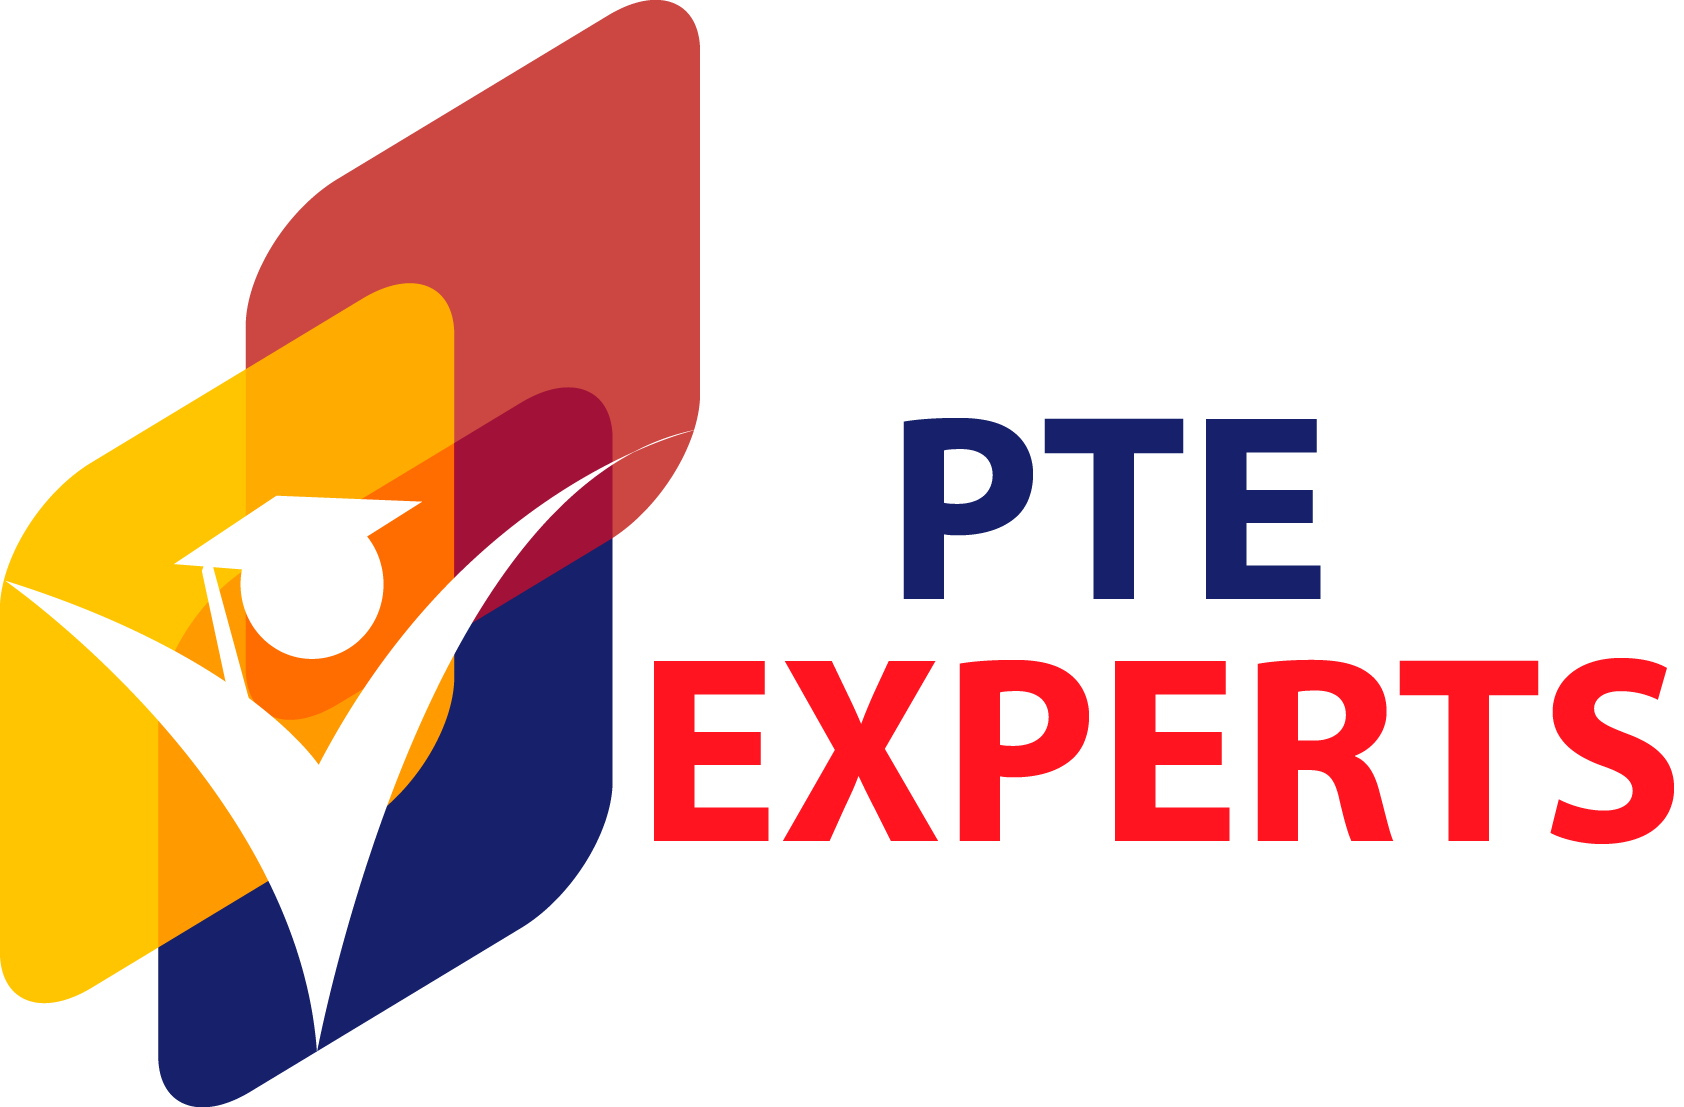 PTE EXPERTS